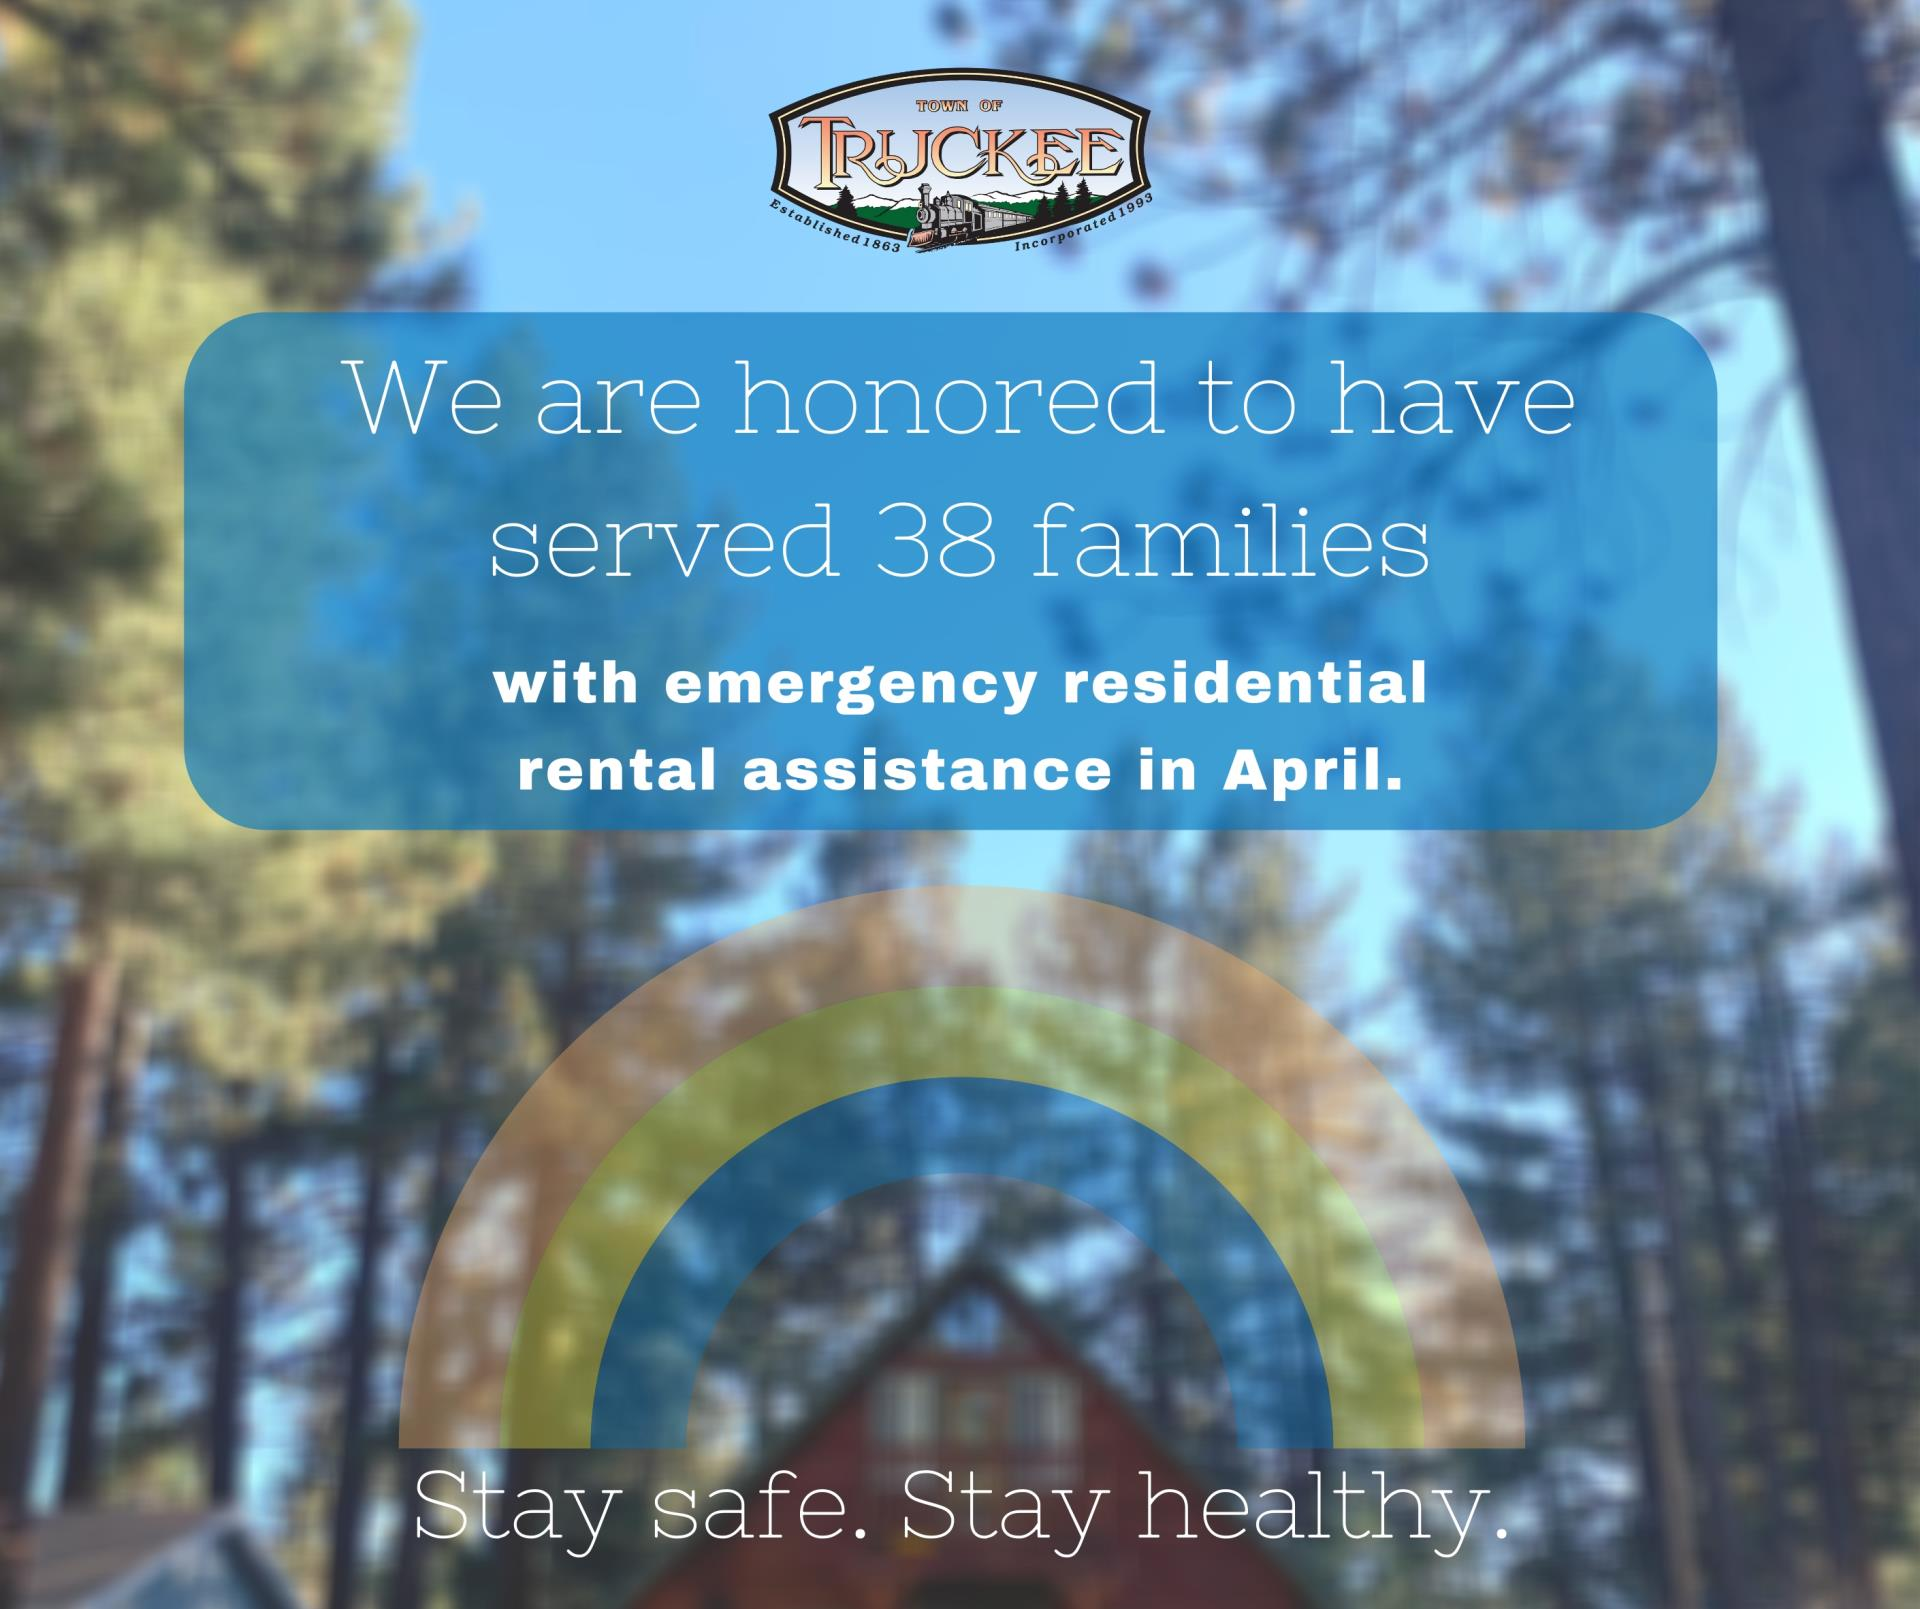 Emergency Residential Rental Assistance Provided